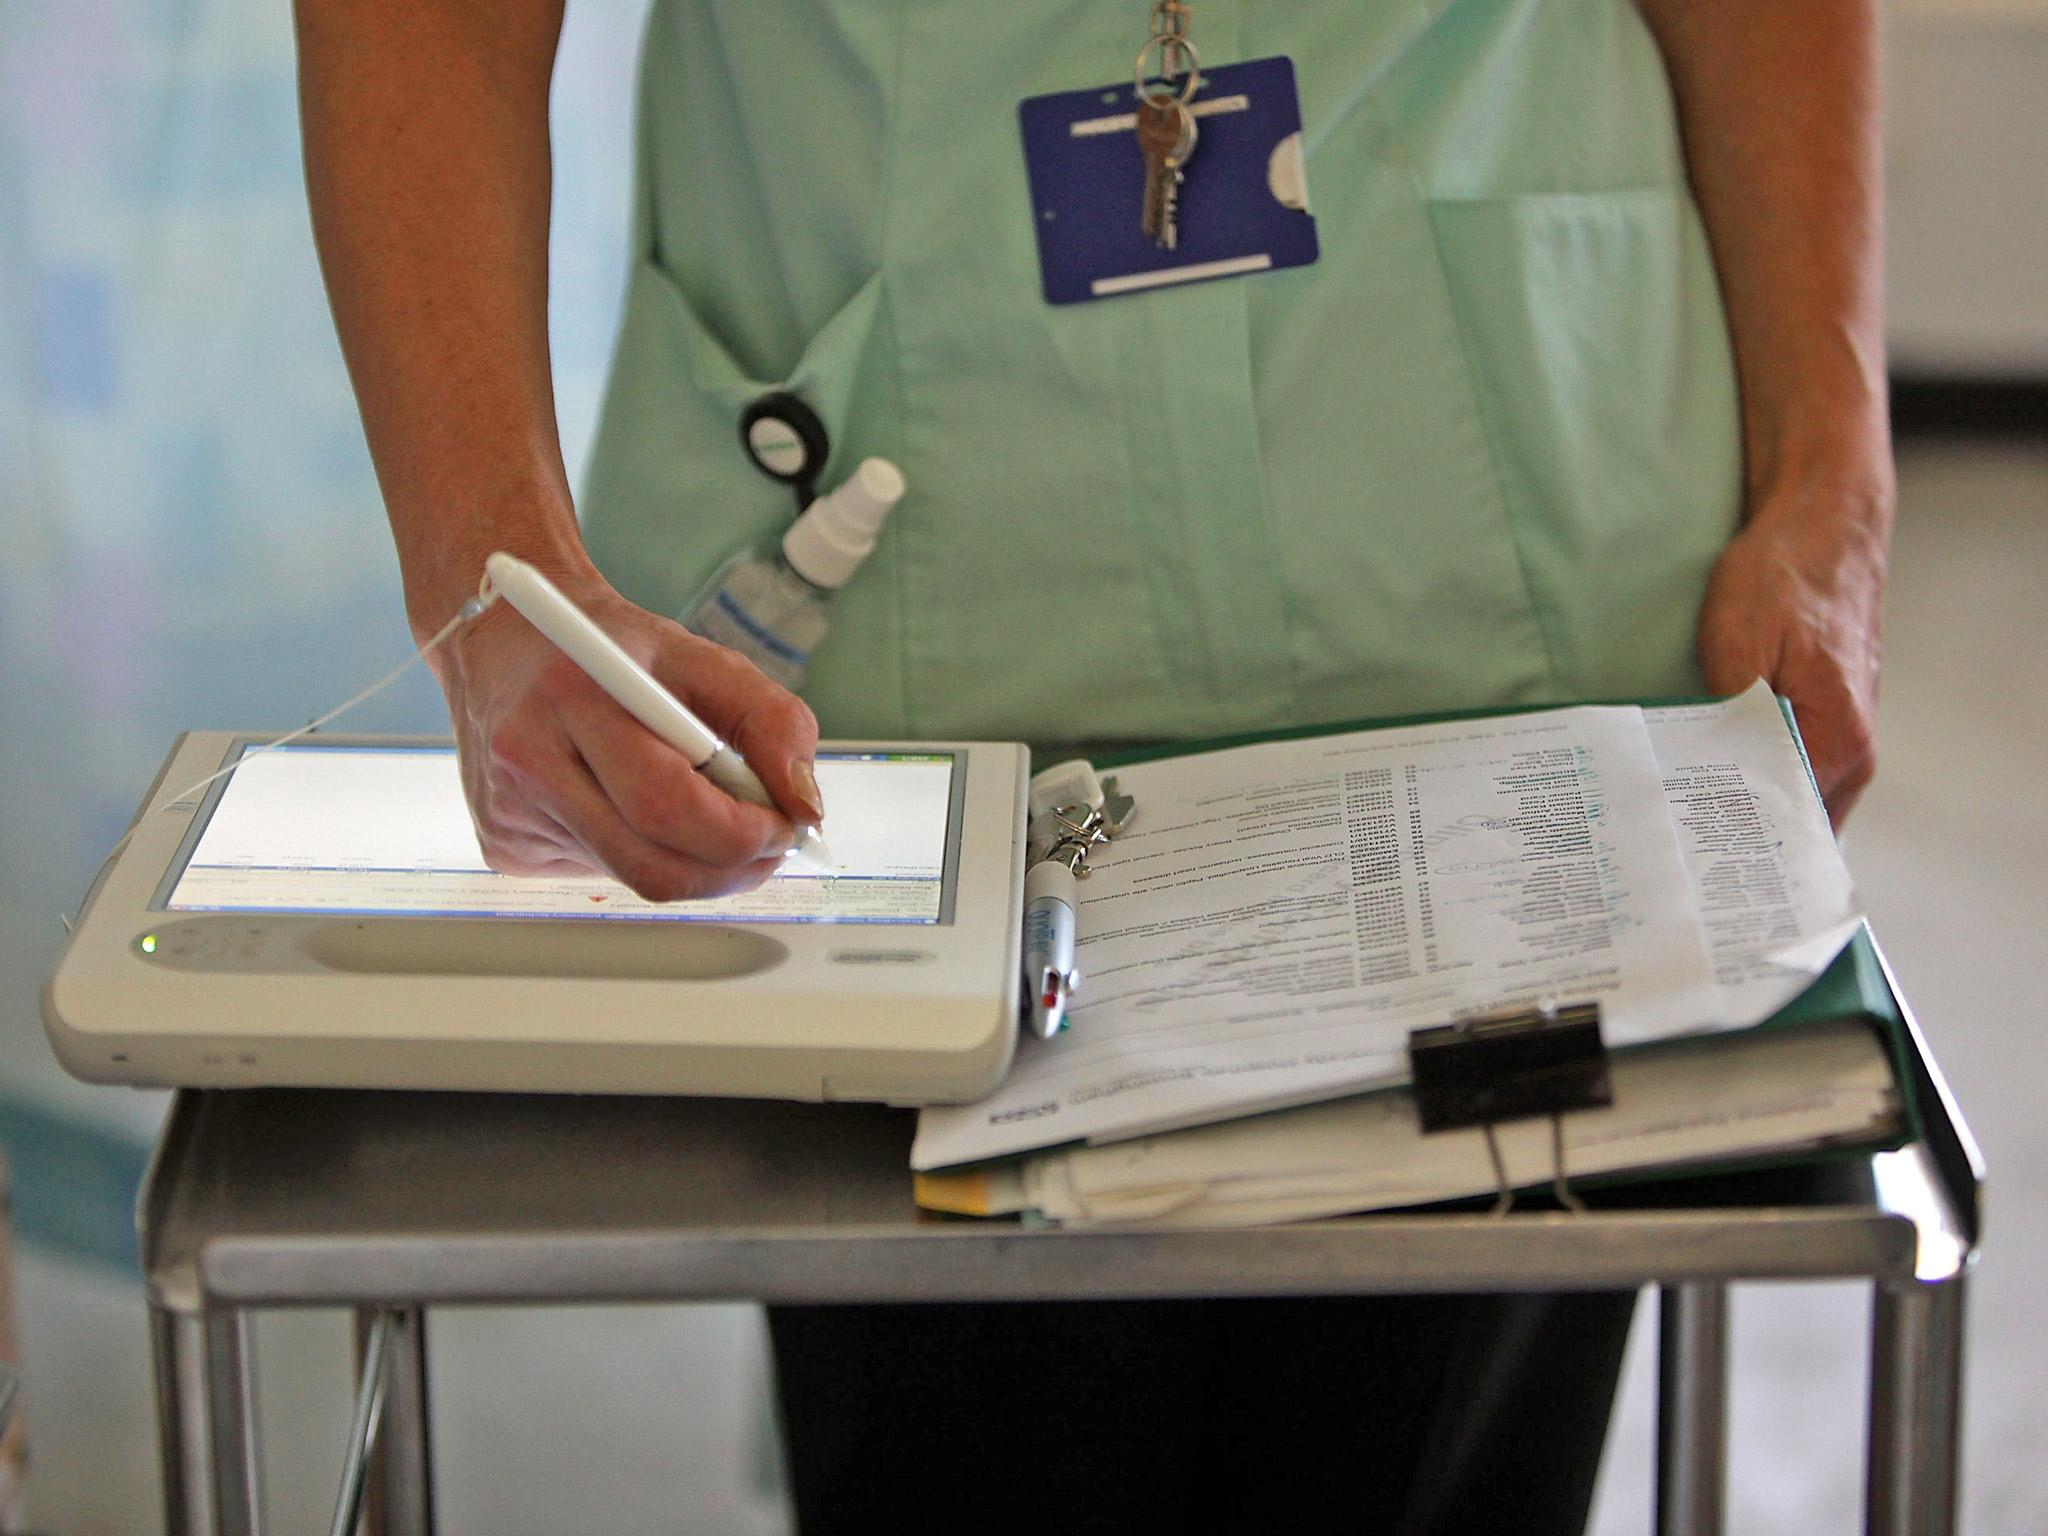 Hundreds of NHS staff and patients referred to controversial counter-terrorism programme